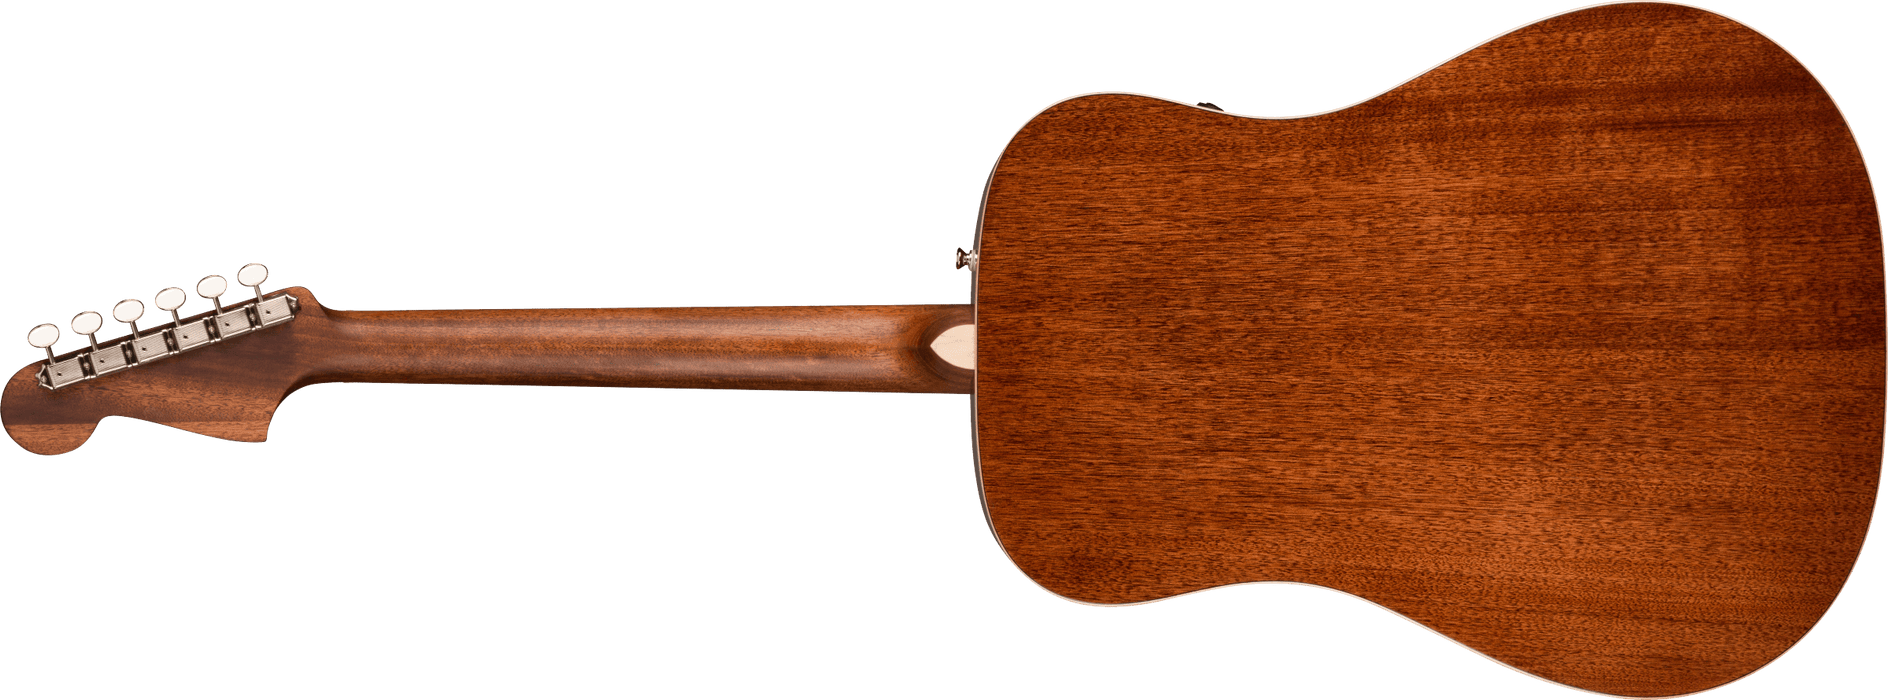 Fender Redondo Classic Pau Ferro Fingerboard Aged Cherry Burst Acoustic Guitar With Bag